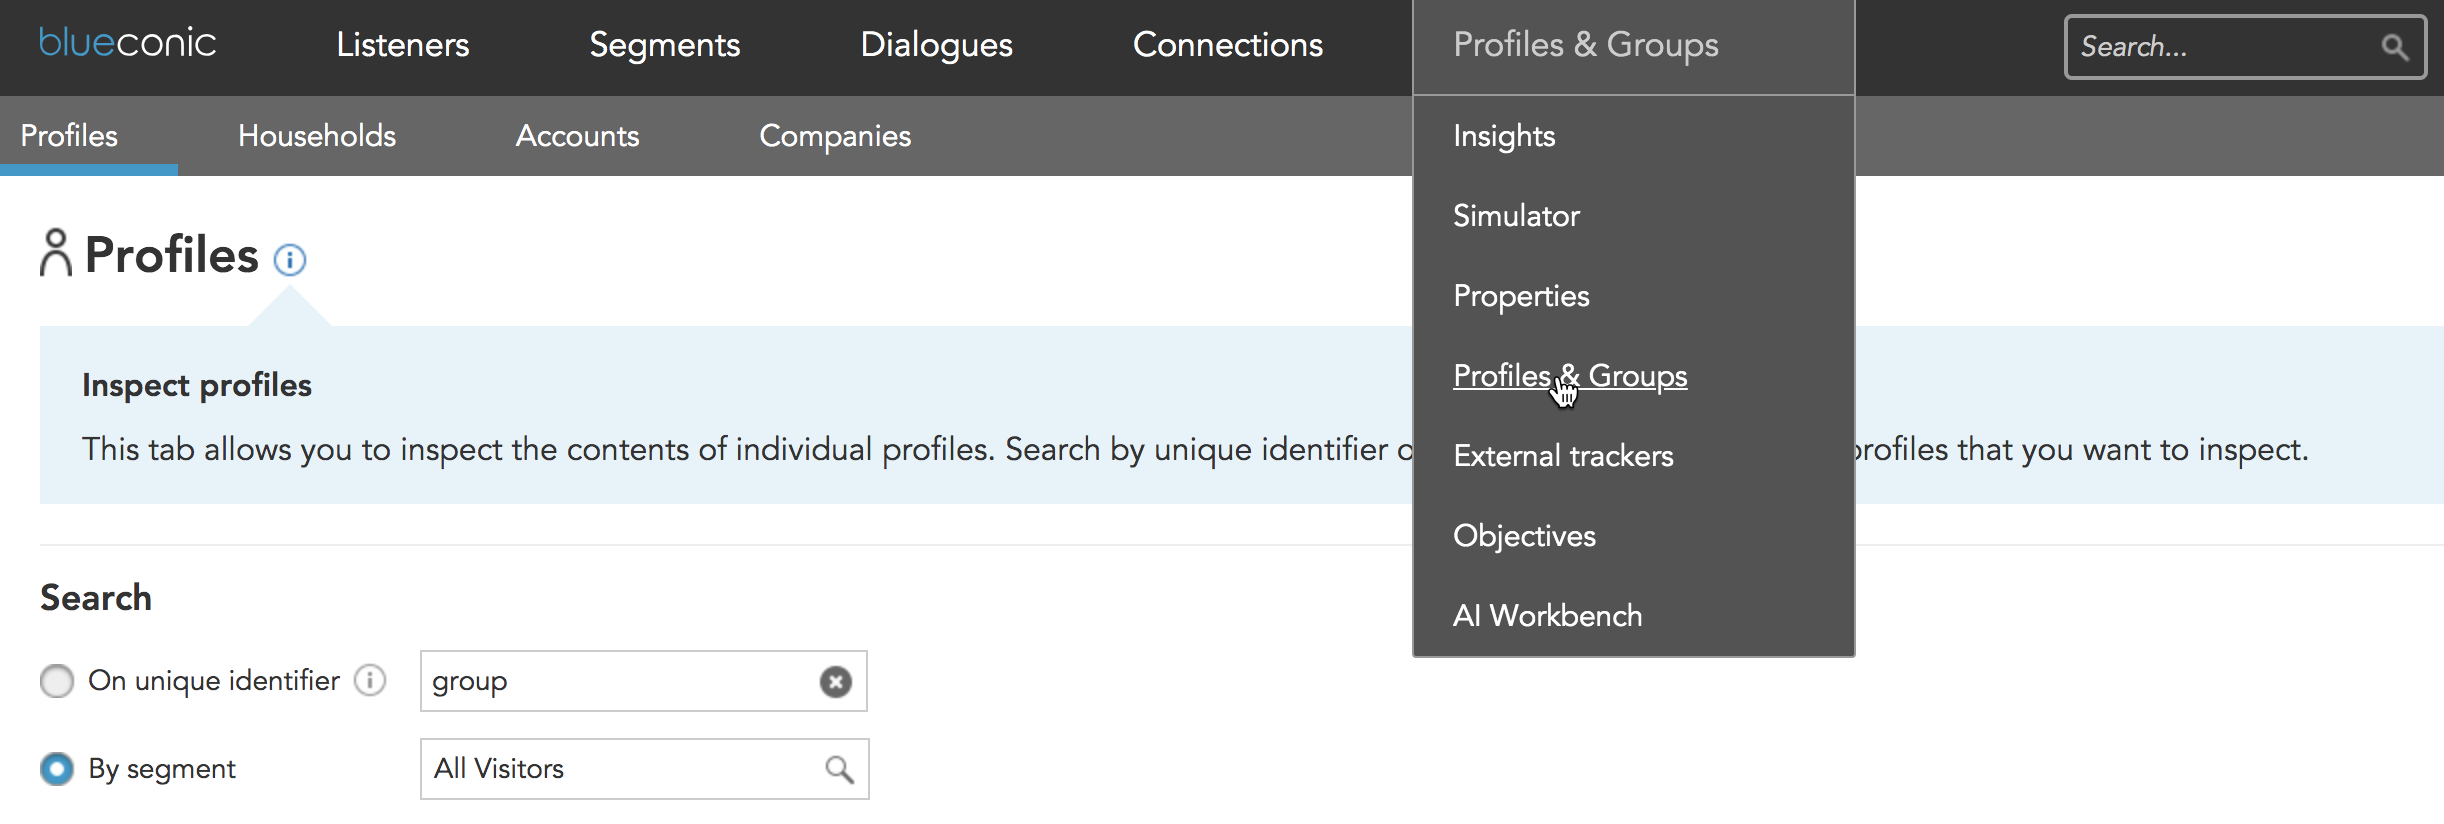 How do you associate profiles into families households accounts or company groups in BlueConic?